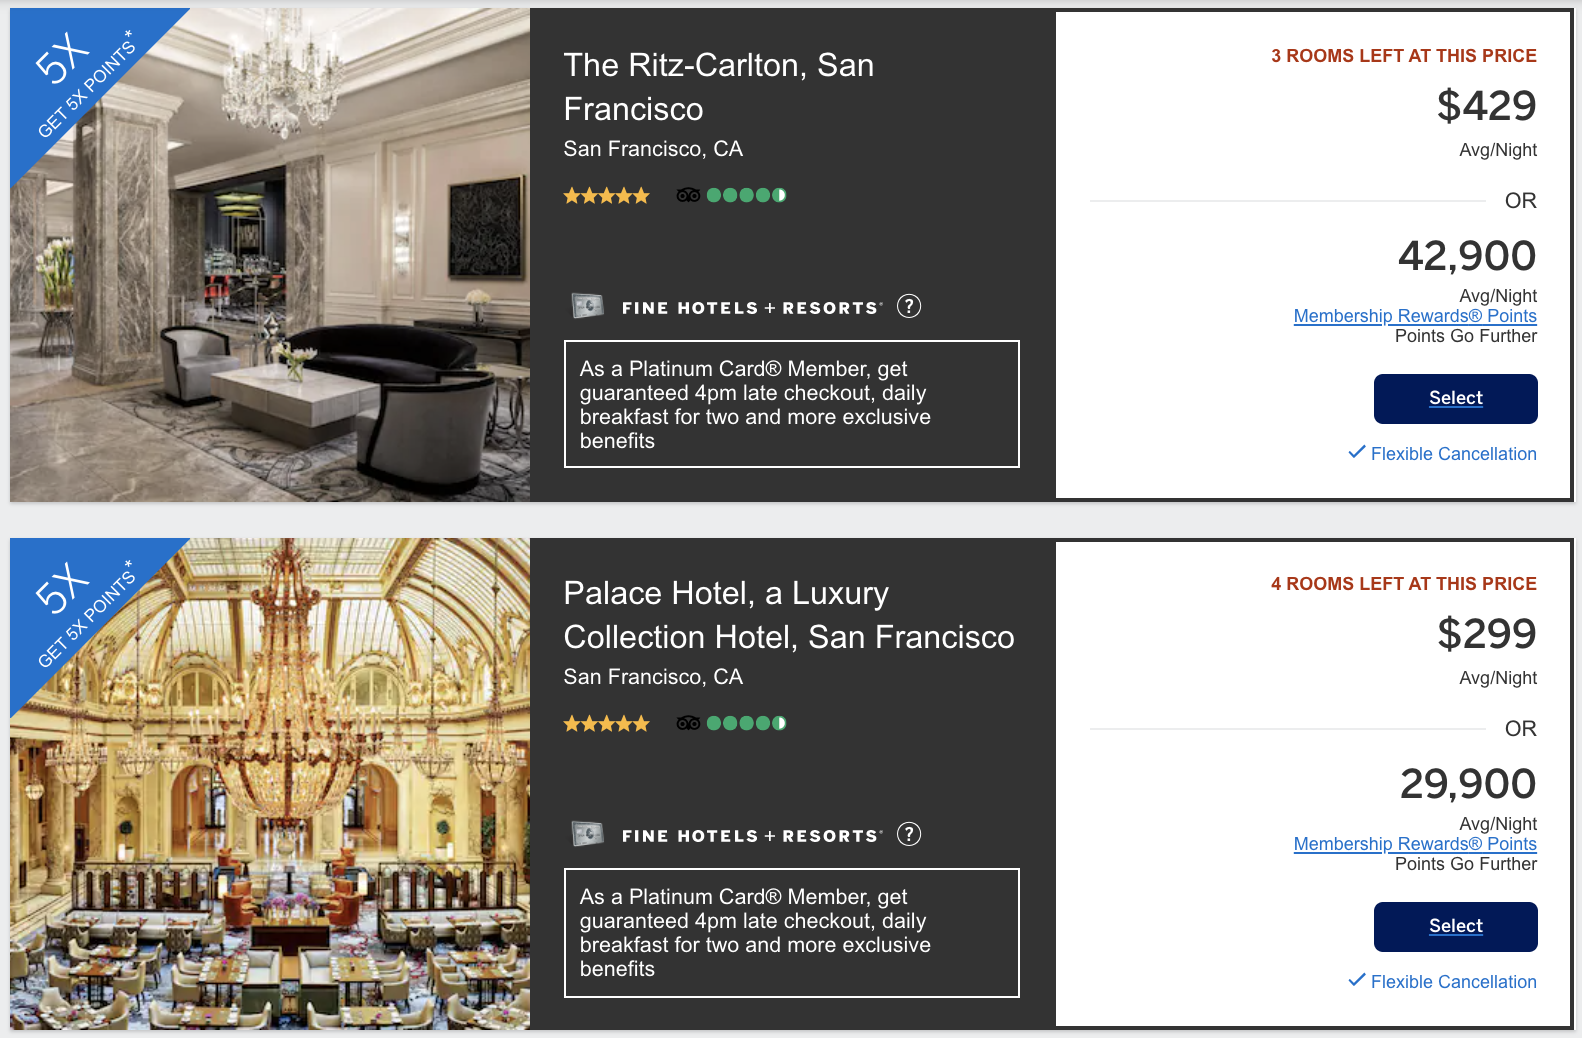 amex hotel offers FHR